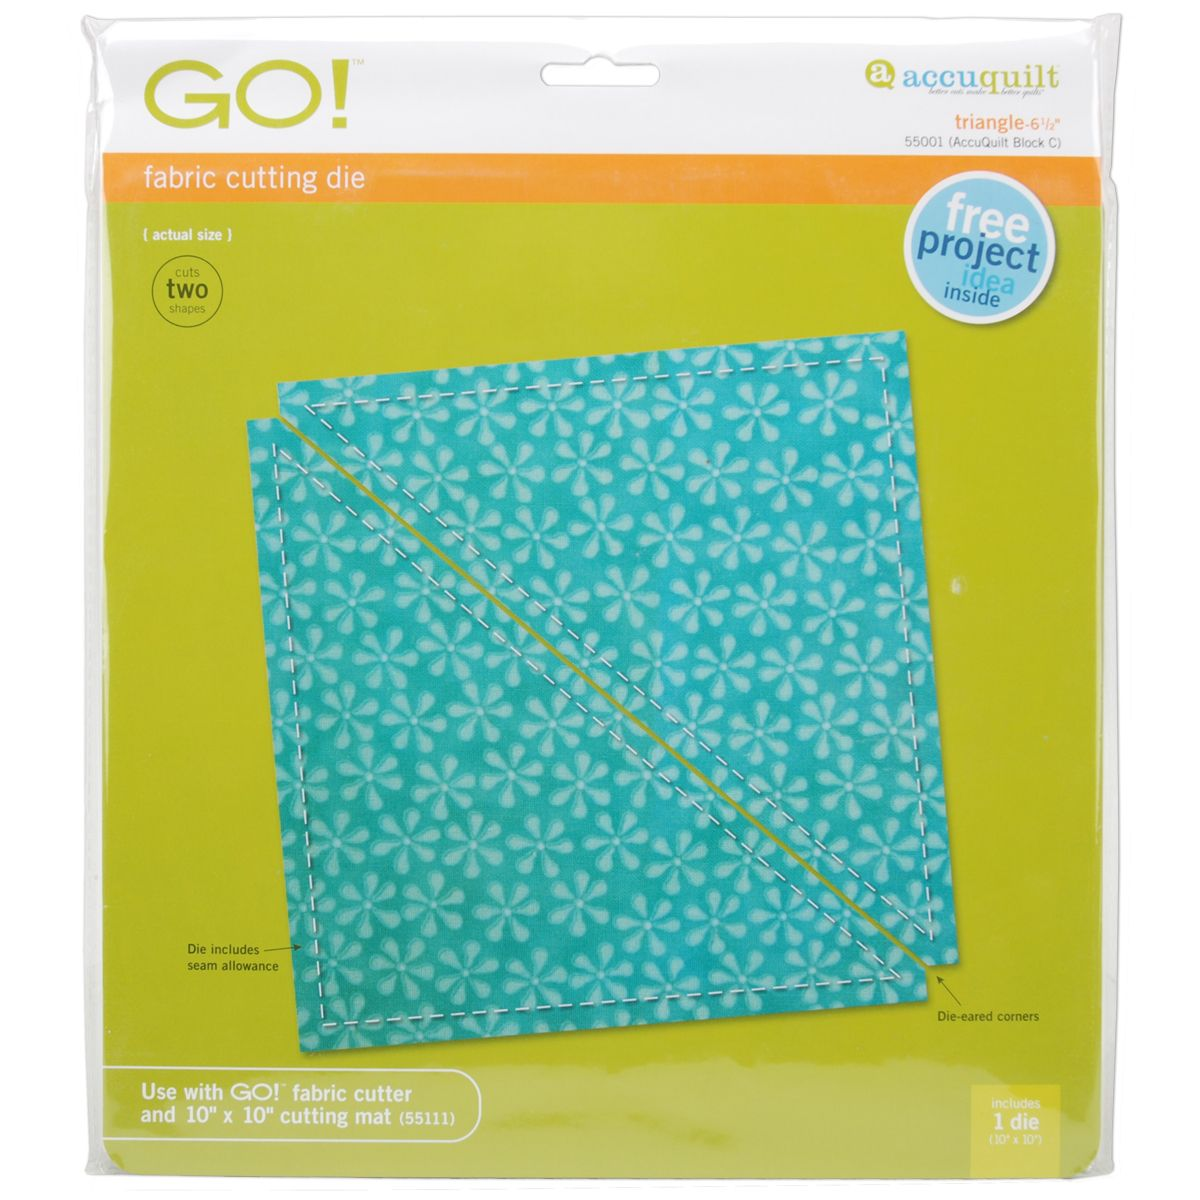 Accuquilt GO! Fabric Cutting Dies-Triangle 6-1/2